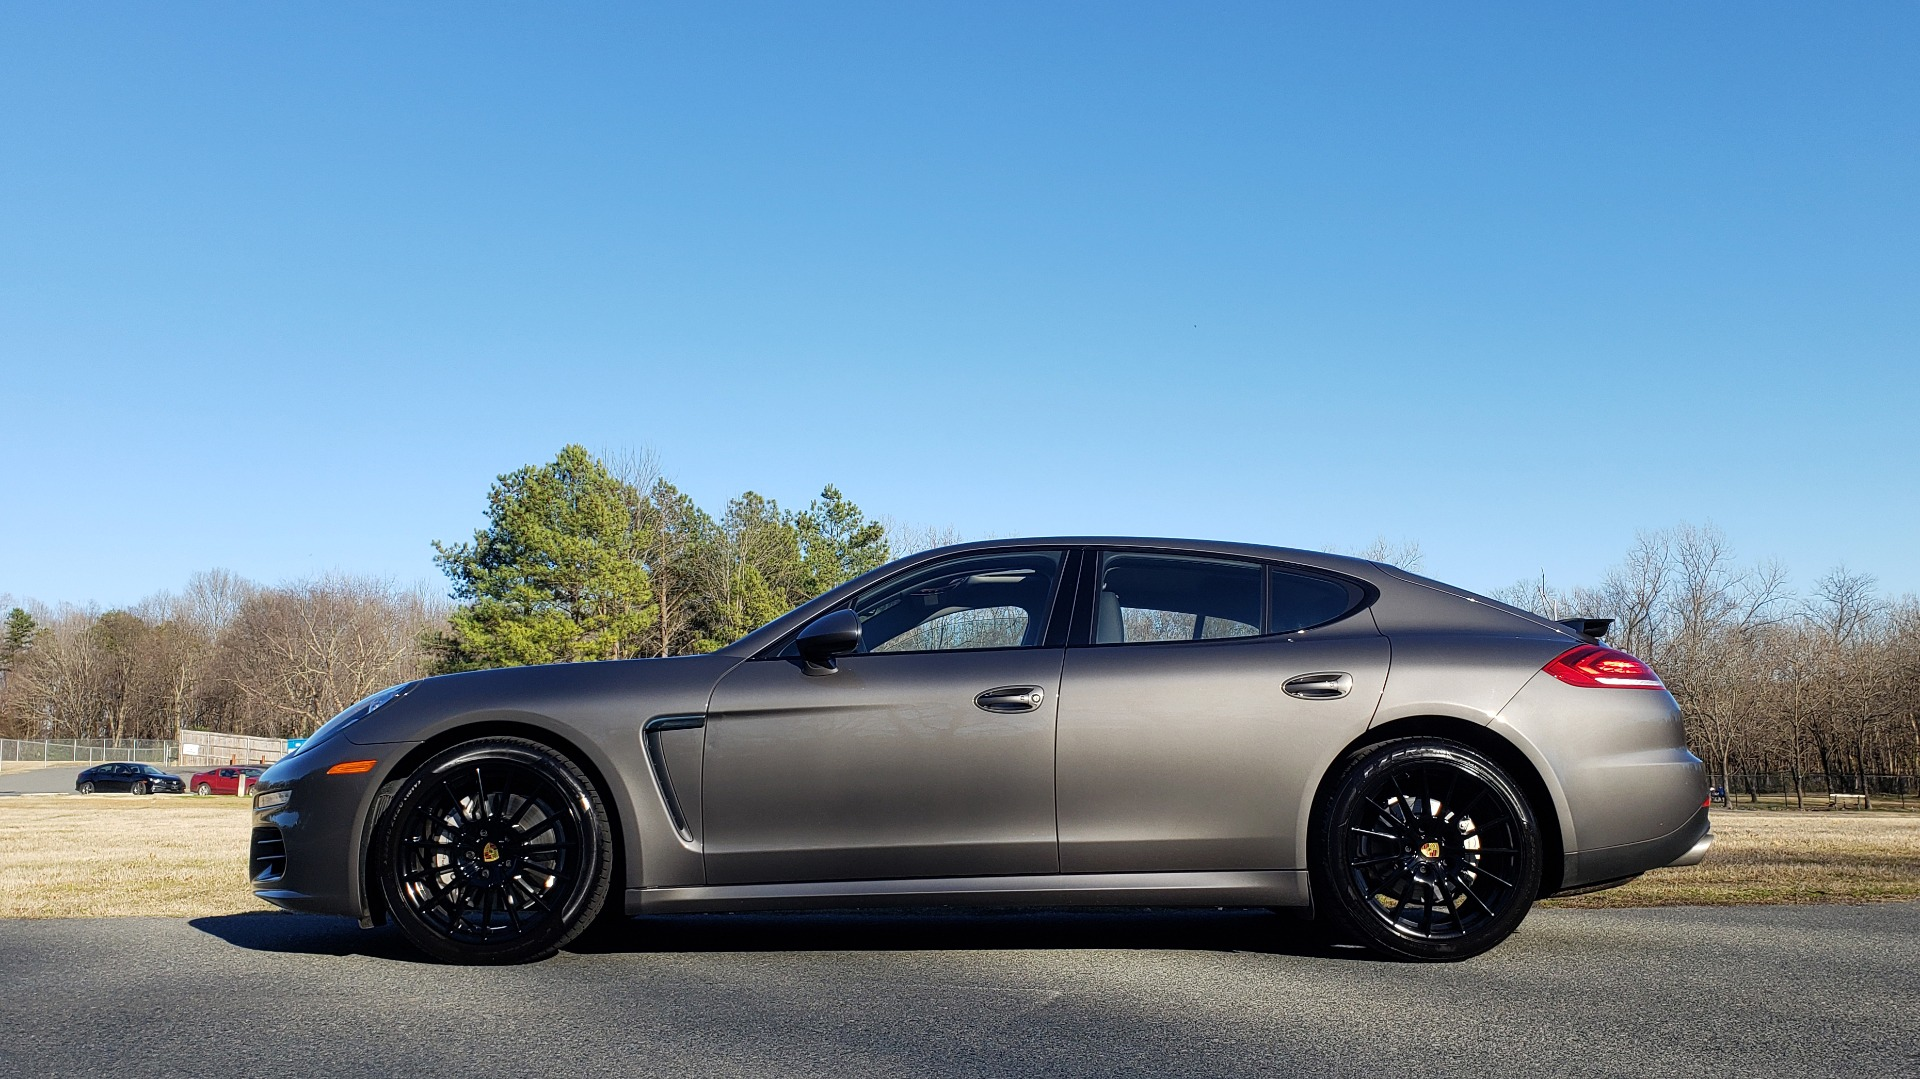 Used 2016 Porsche PANAMERA S / TURBO V6 / PDK / NAV / BOSE / SNRF / LDW / REARVIEW for sale Sold at Formula Imports in Charlotte NC 28227 32